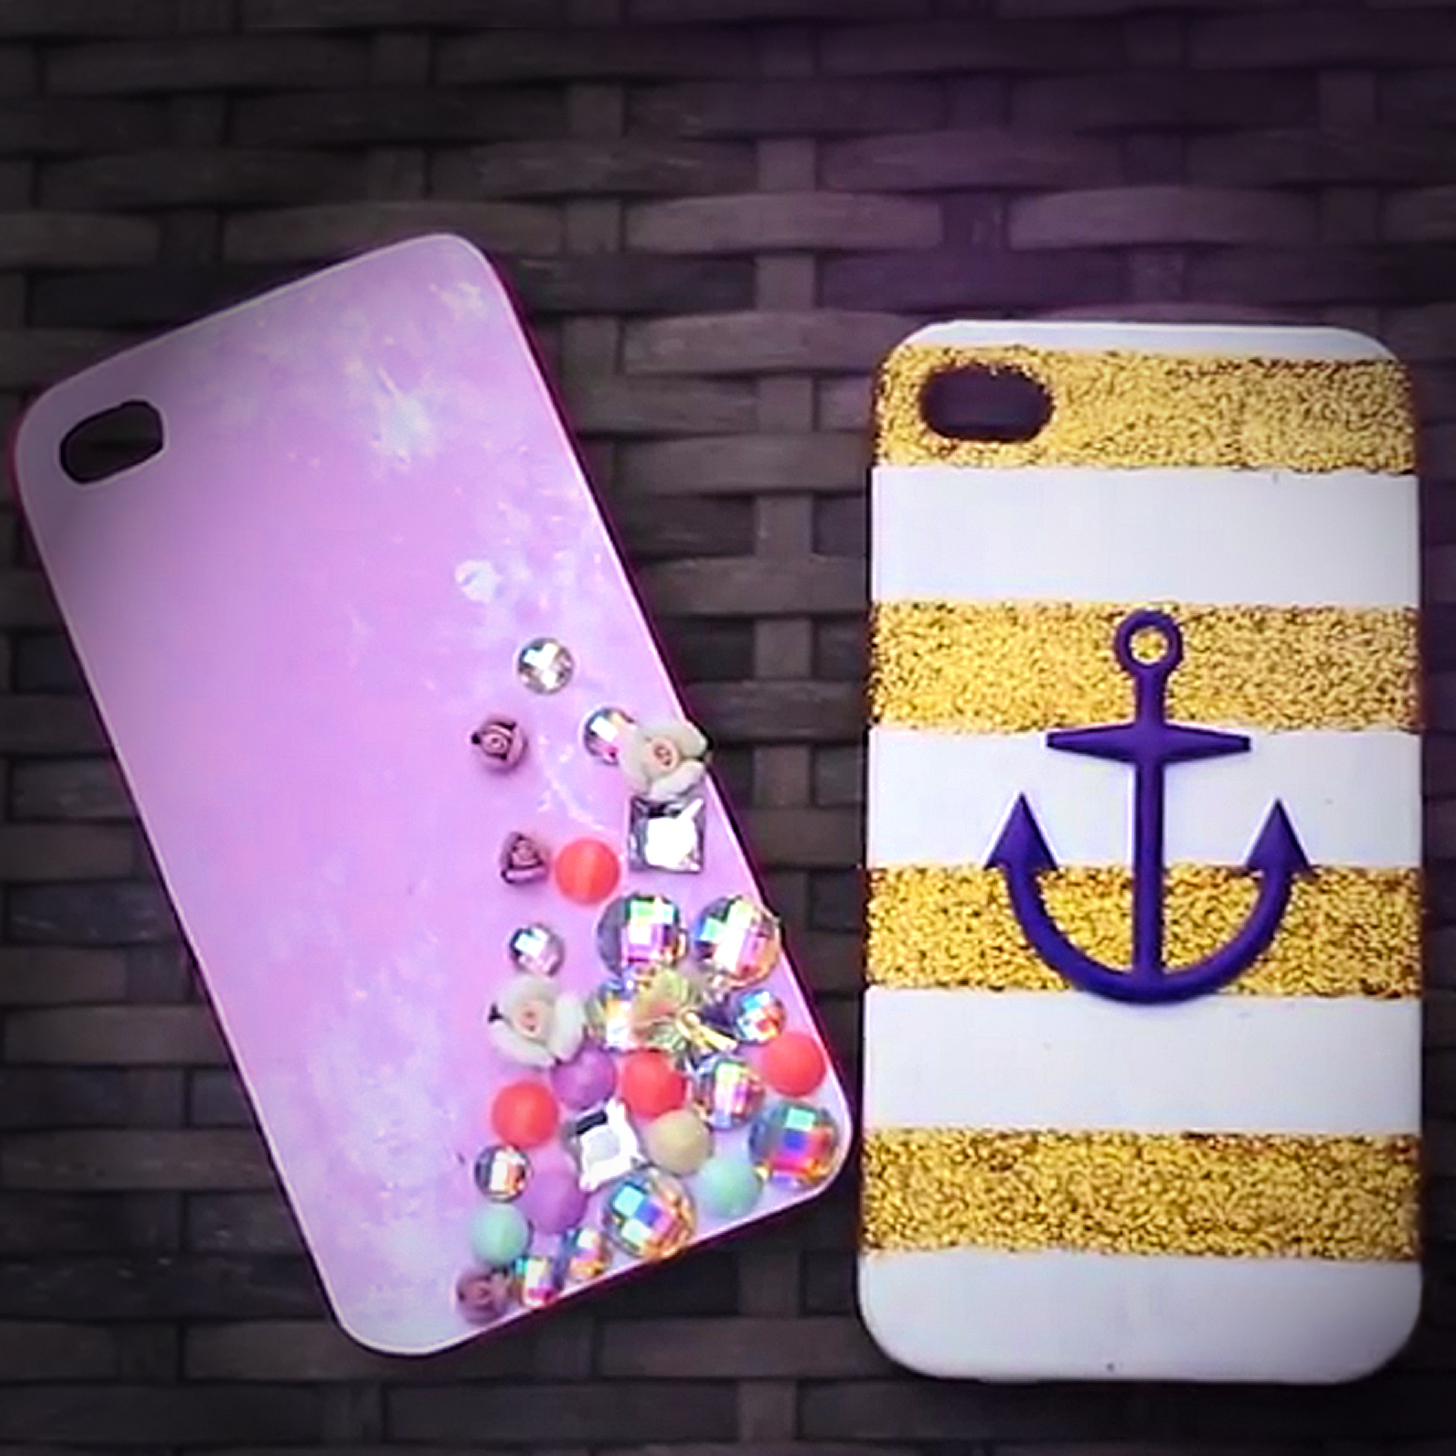 diy iphone case video popsugar fashion